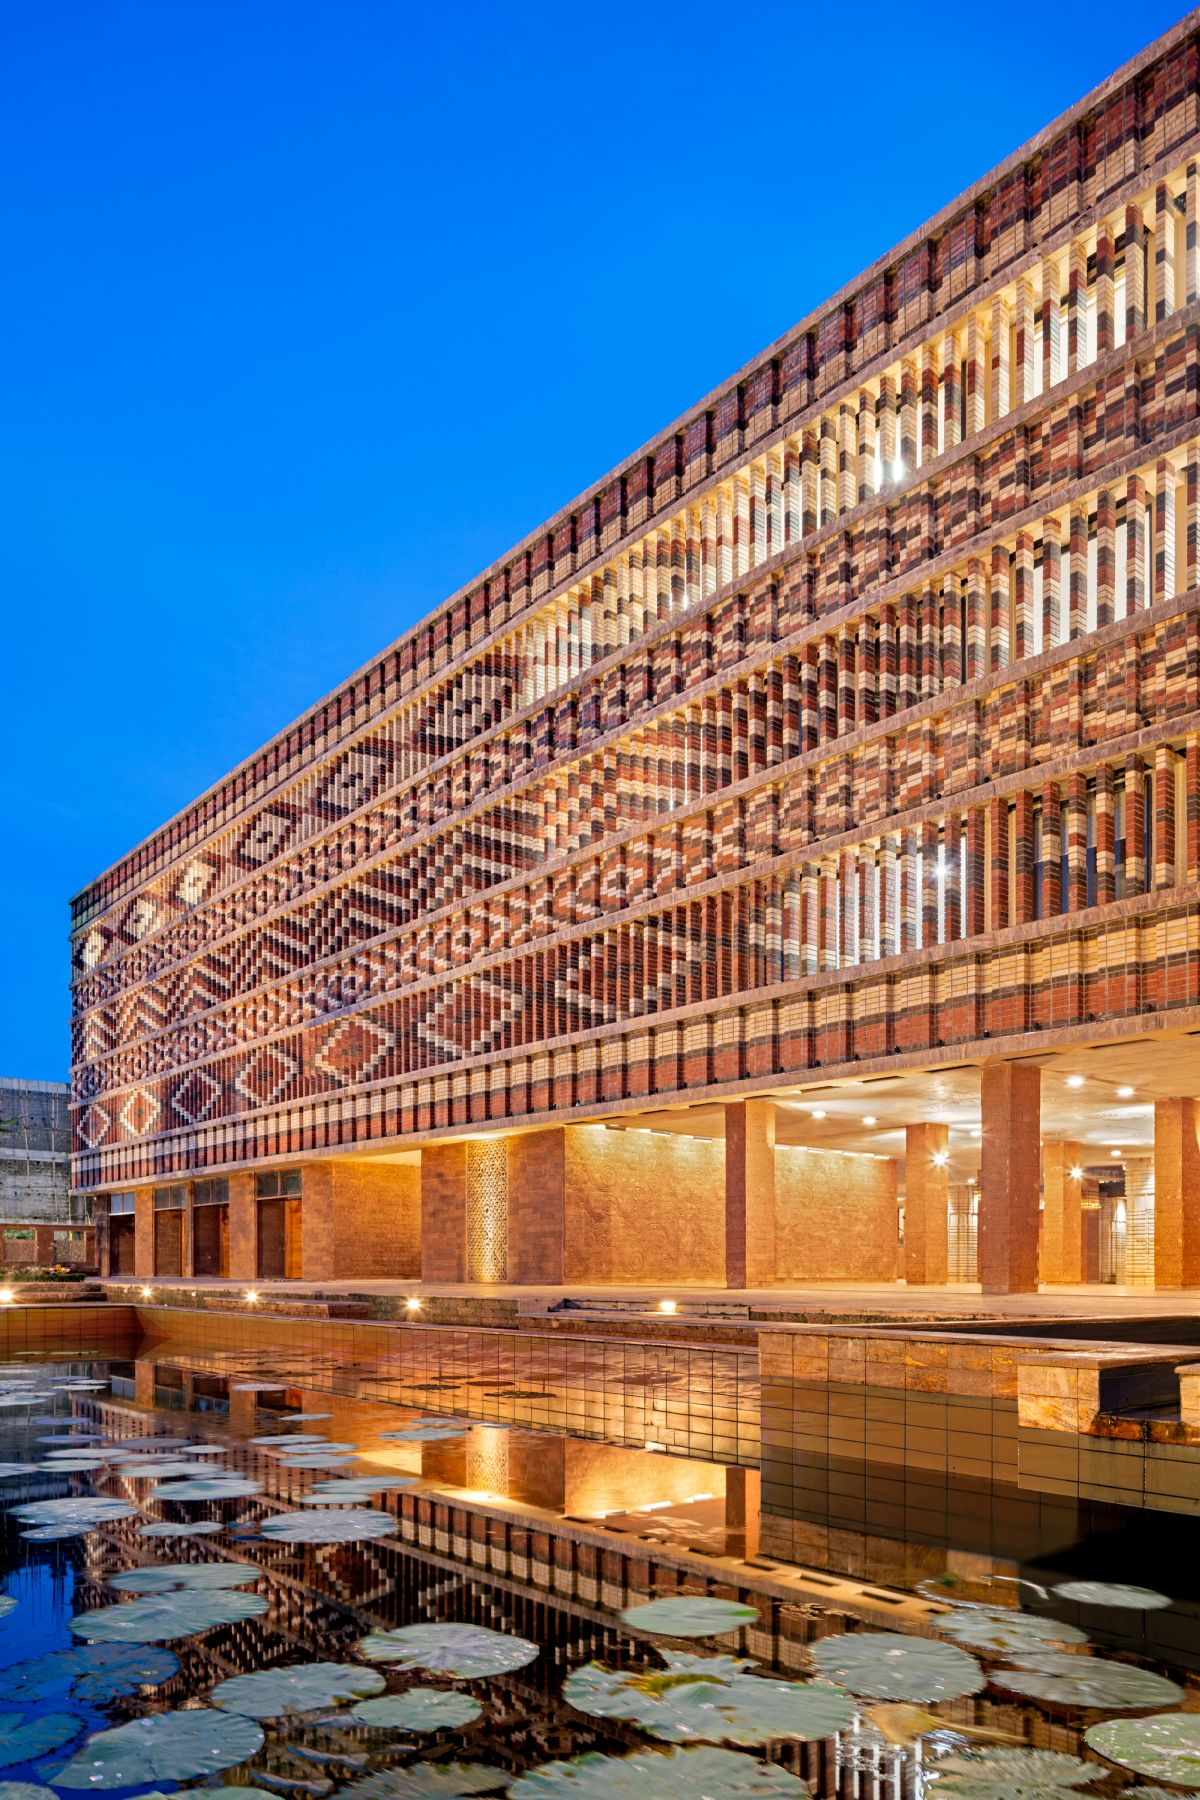 Krushi Bhawan   150 Local Artisans Come Together to Craft a Civic Building in India, by Studio Lotus 38